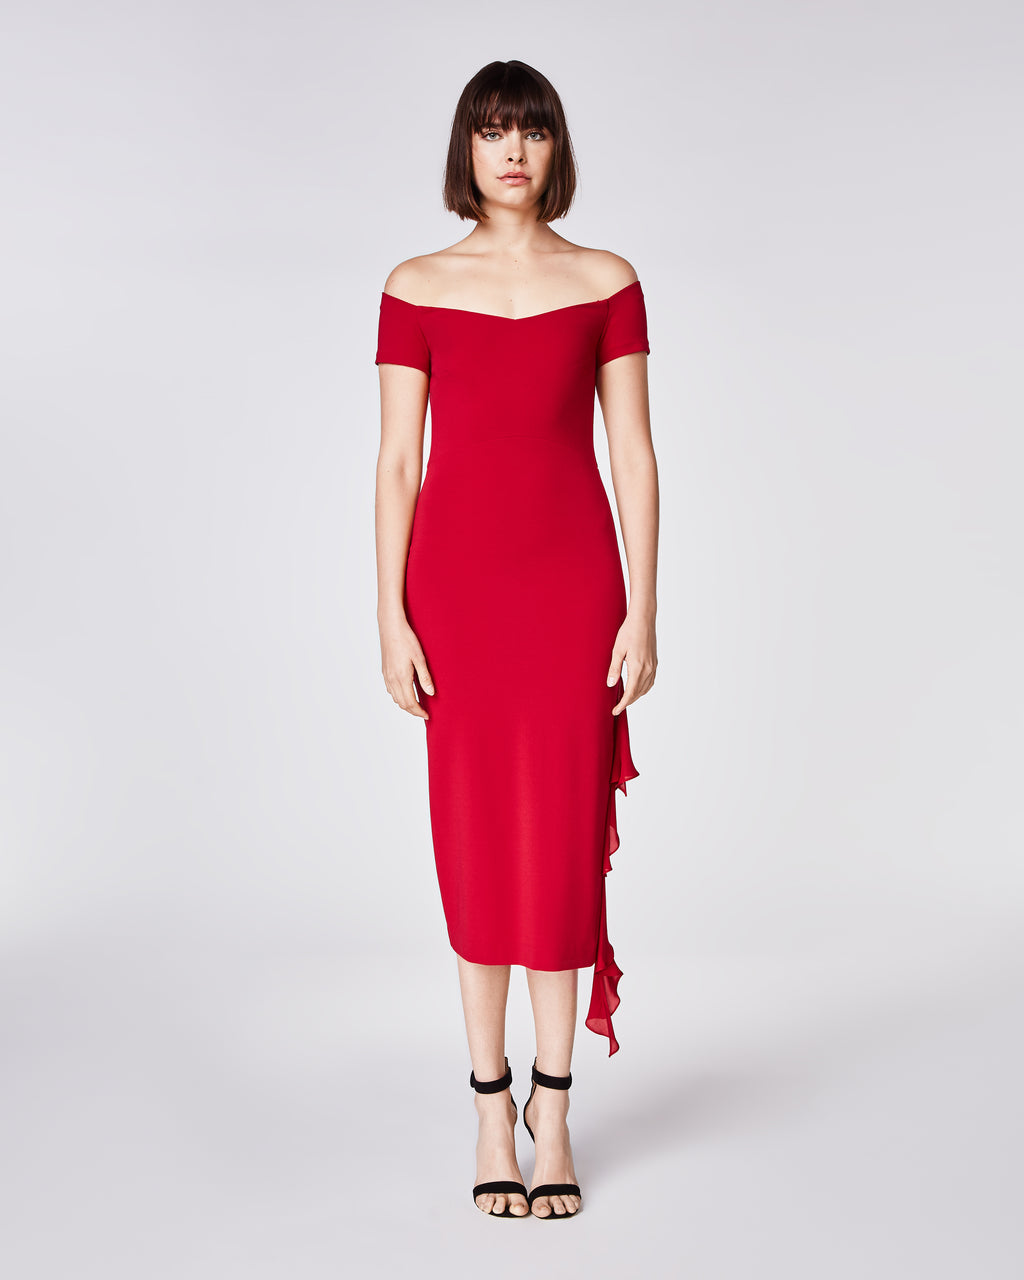 CC10147 - STRUCTURED HEAVY JERSEY OFF SHoulder dress - dresses - midi - In a fitted, off the shoulder silhouette this midi dress features a side slit and ruffle accent. Fully lined. Final Sale